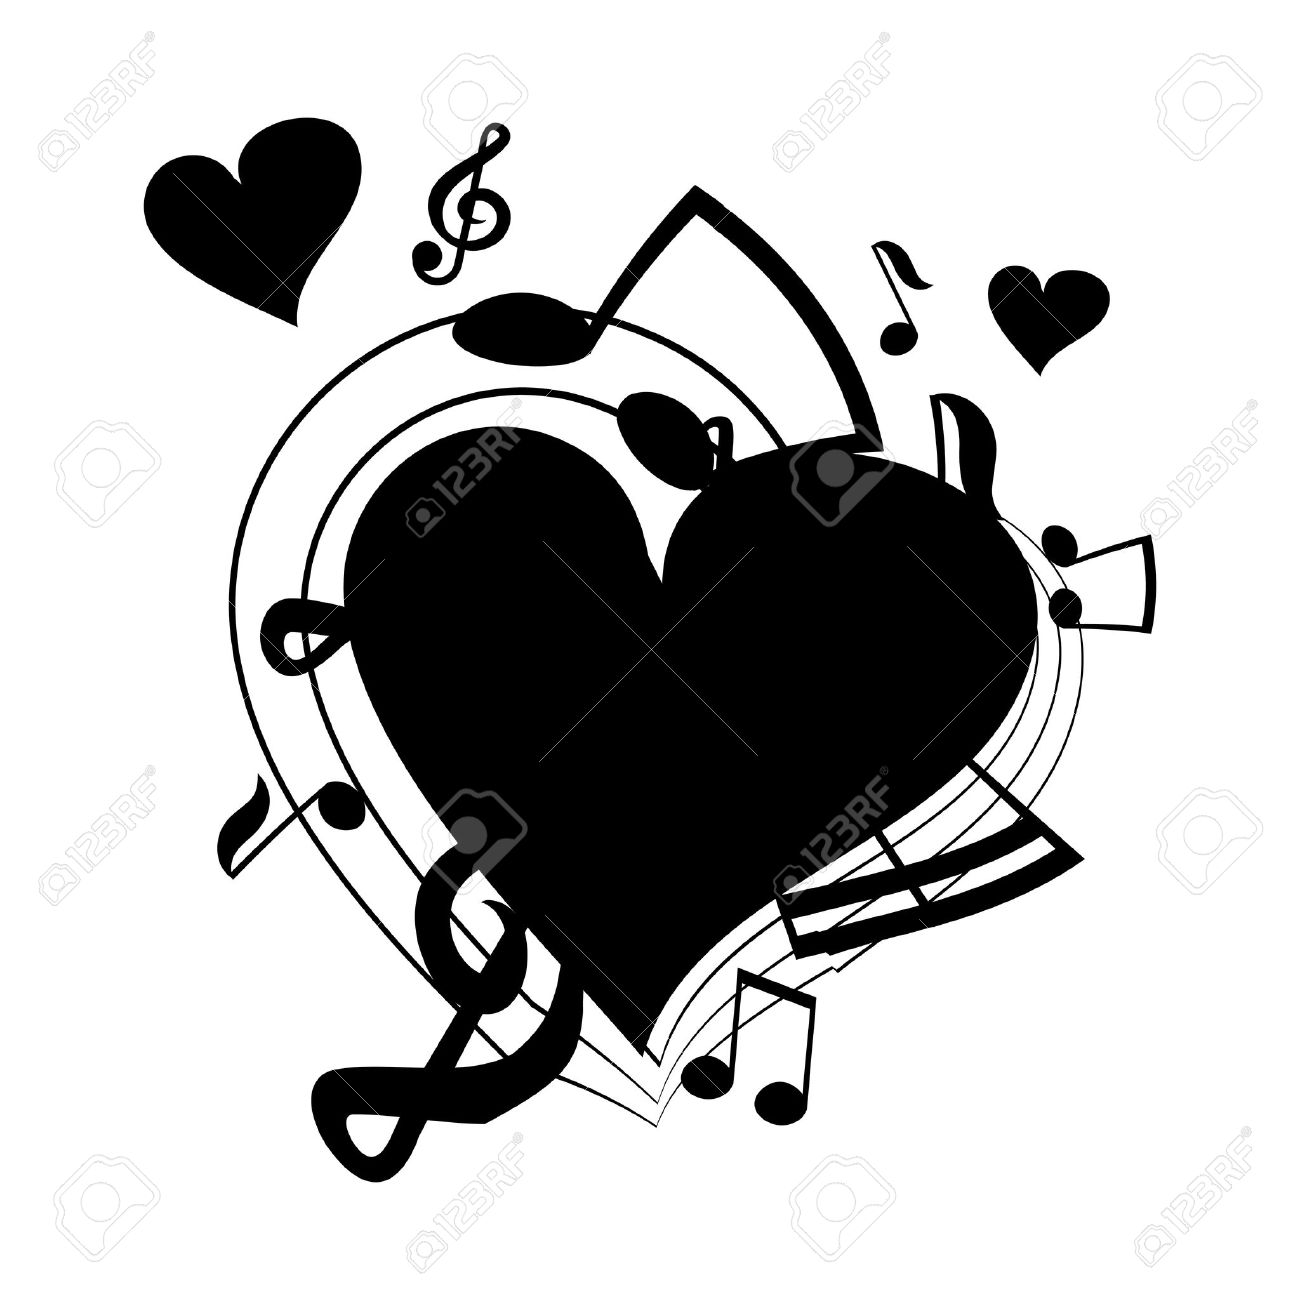 Vector Illustration Of Heart, Musical Notes Royalty Free Cliparts.